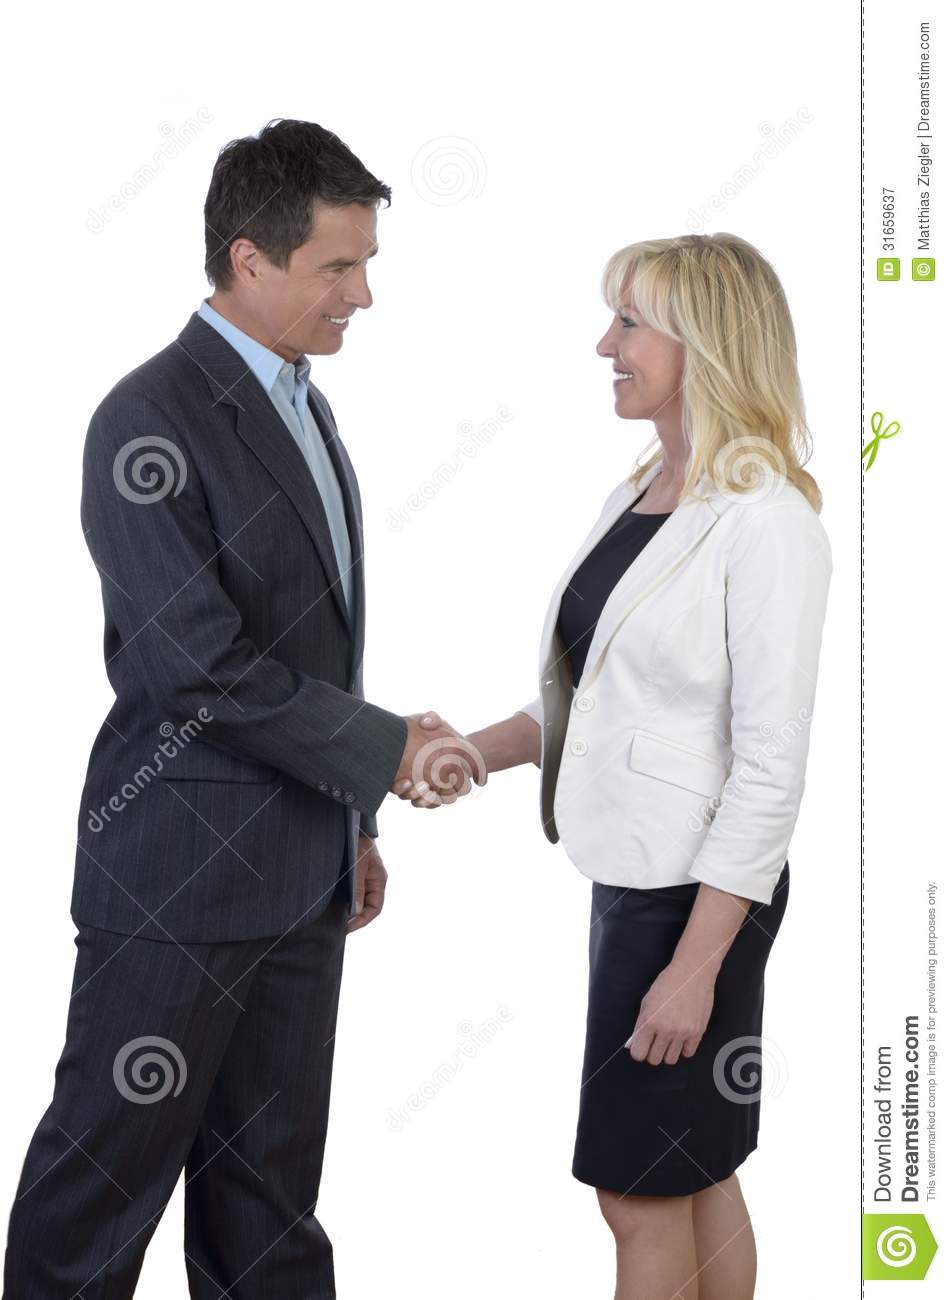 Business Man And Woman Shaking Hands Royalty Free Stock